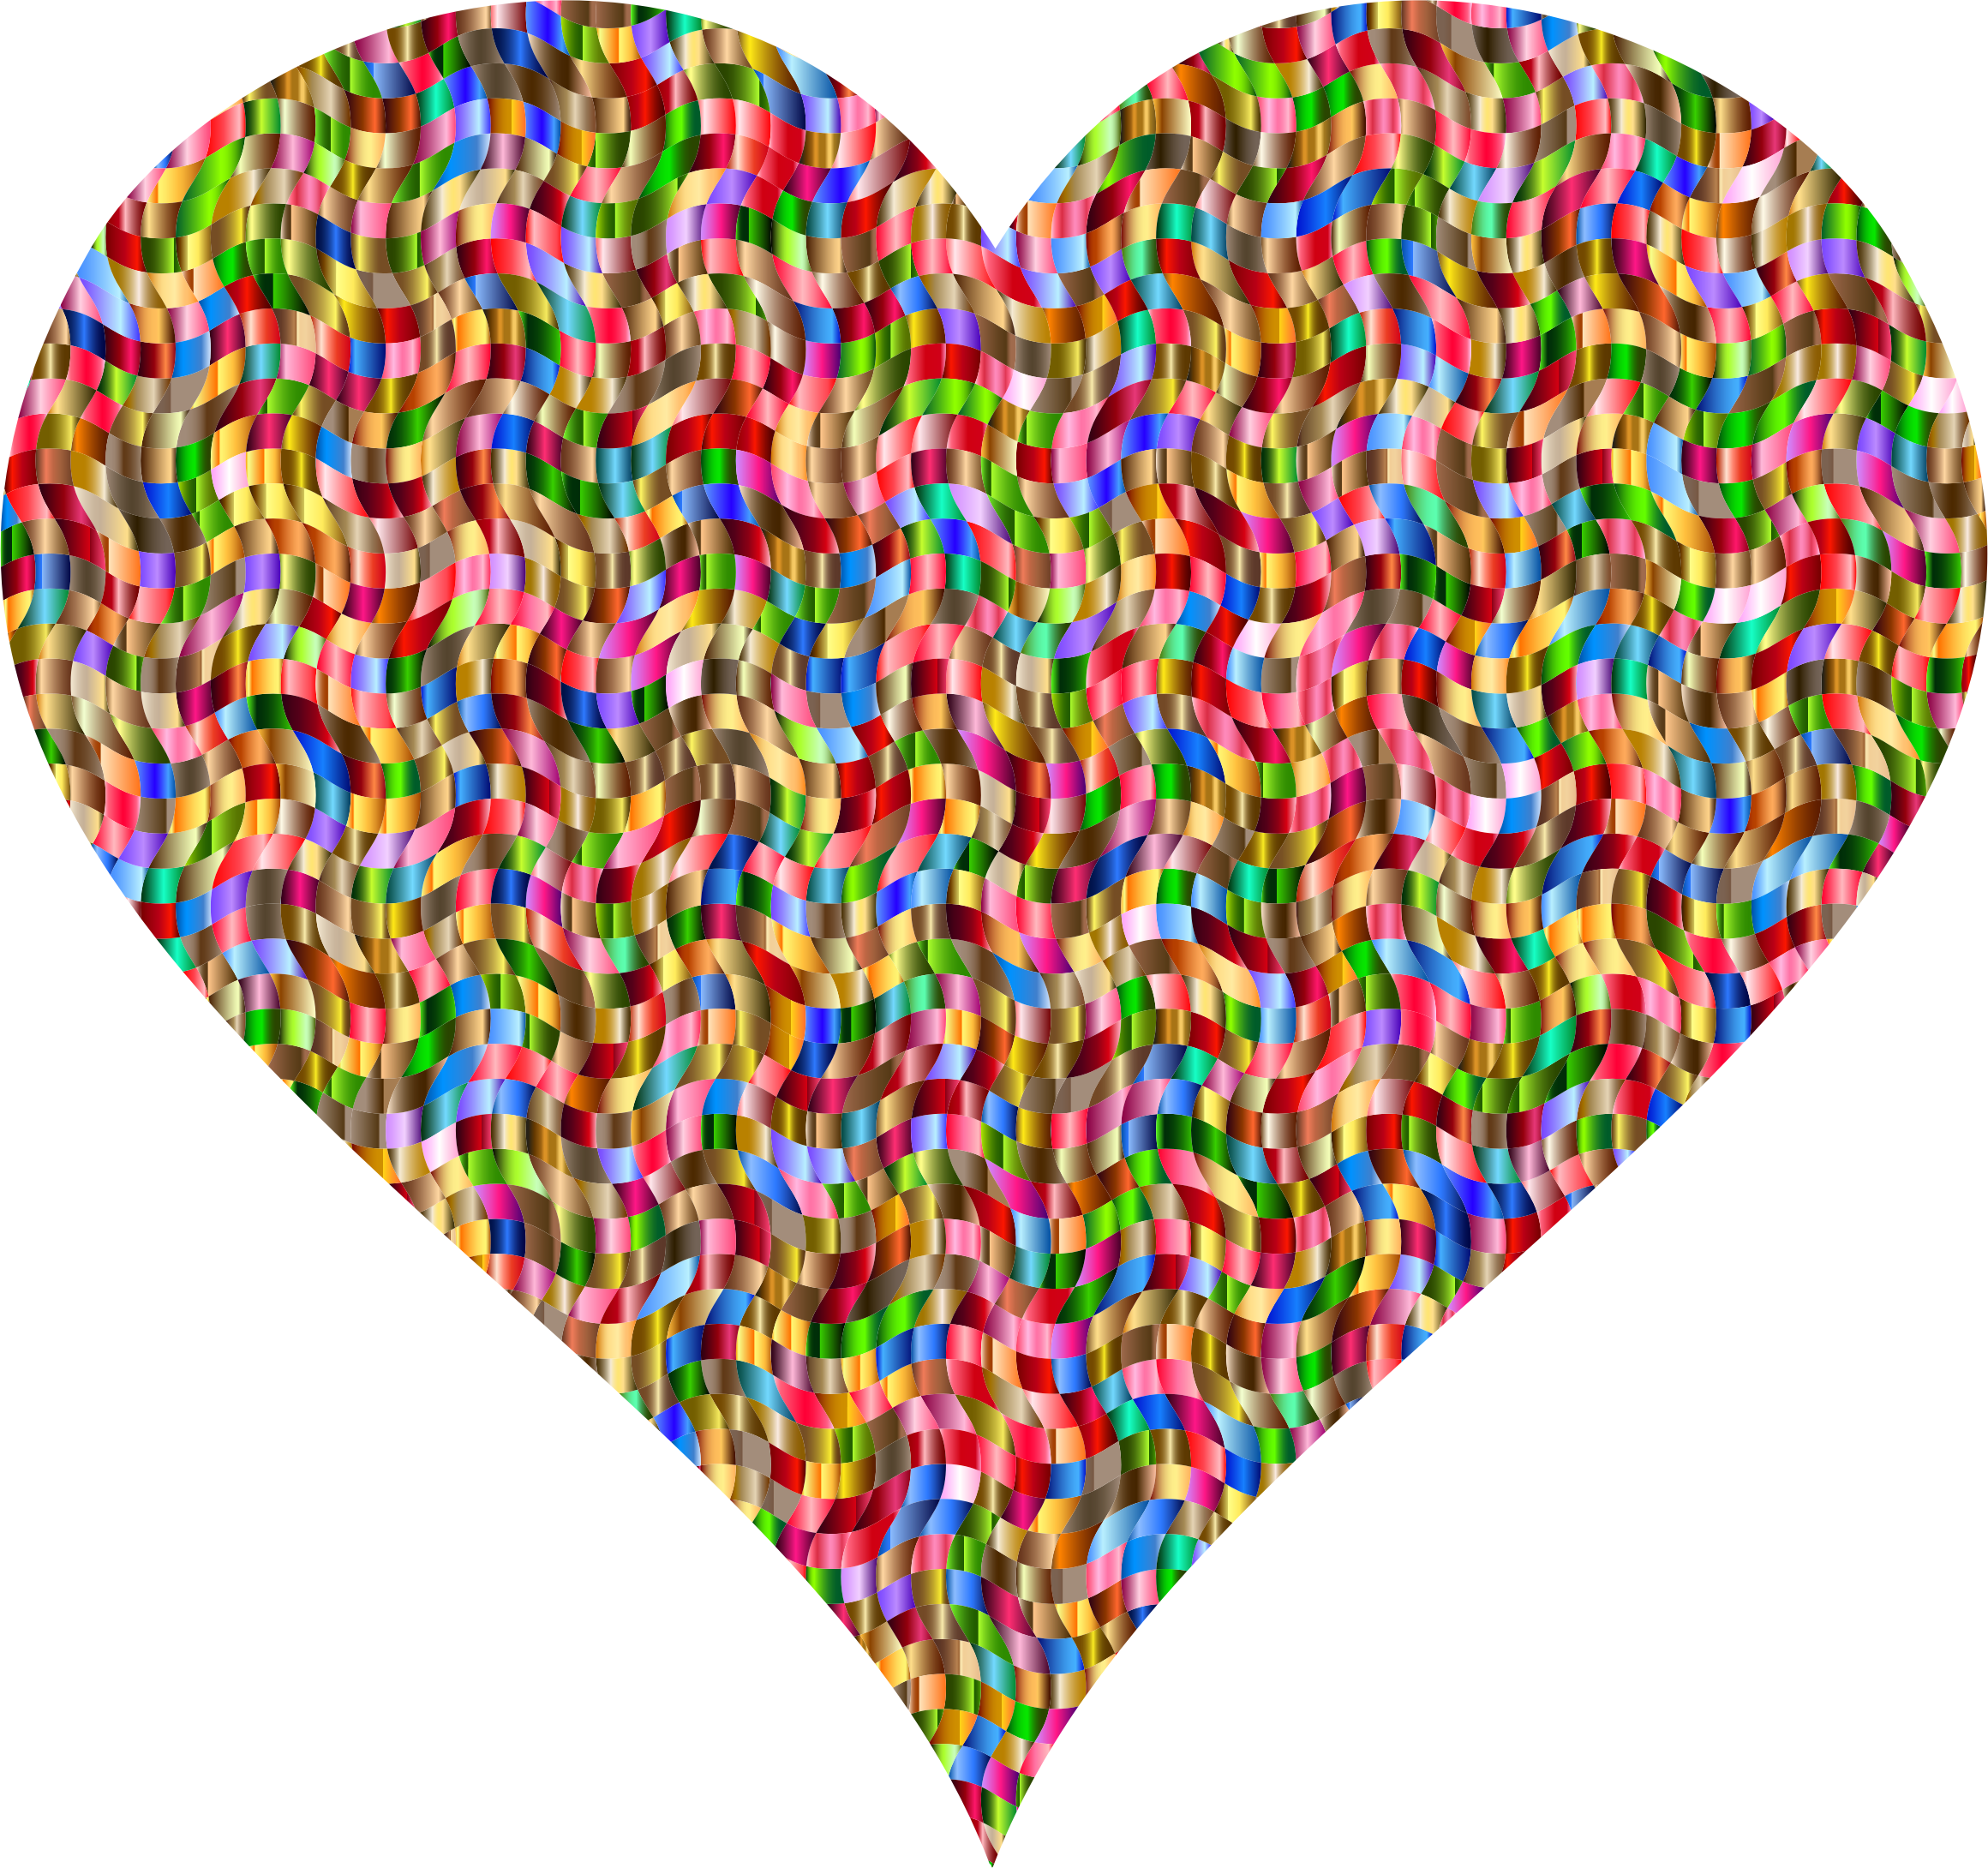 Colorful Confetti Heart 2 by GDJ